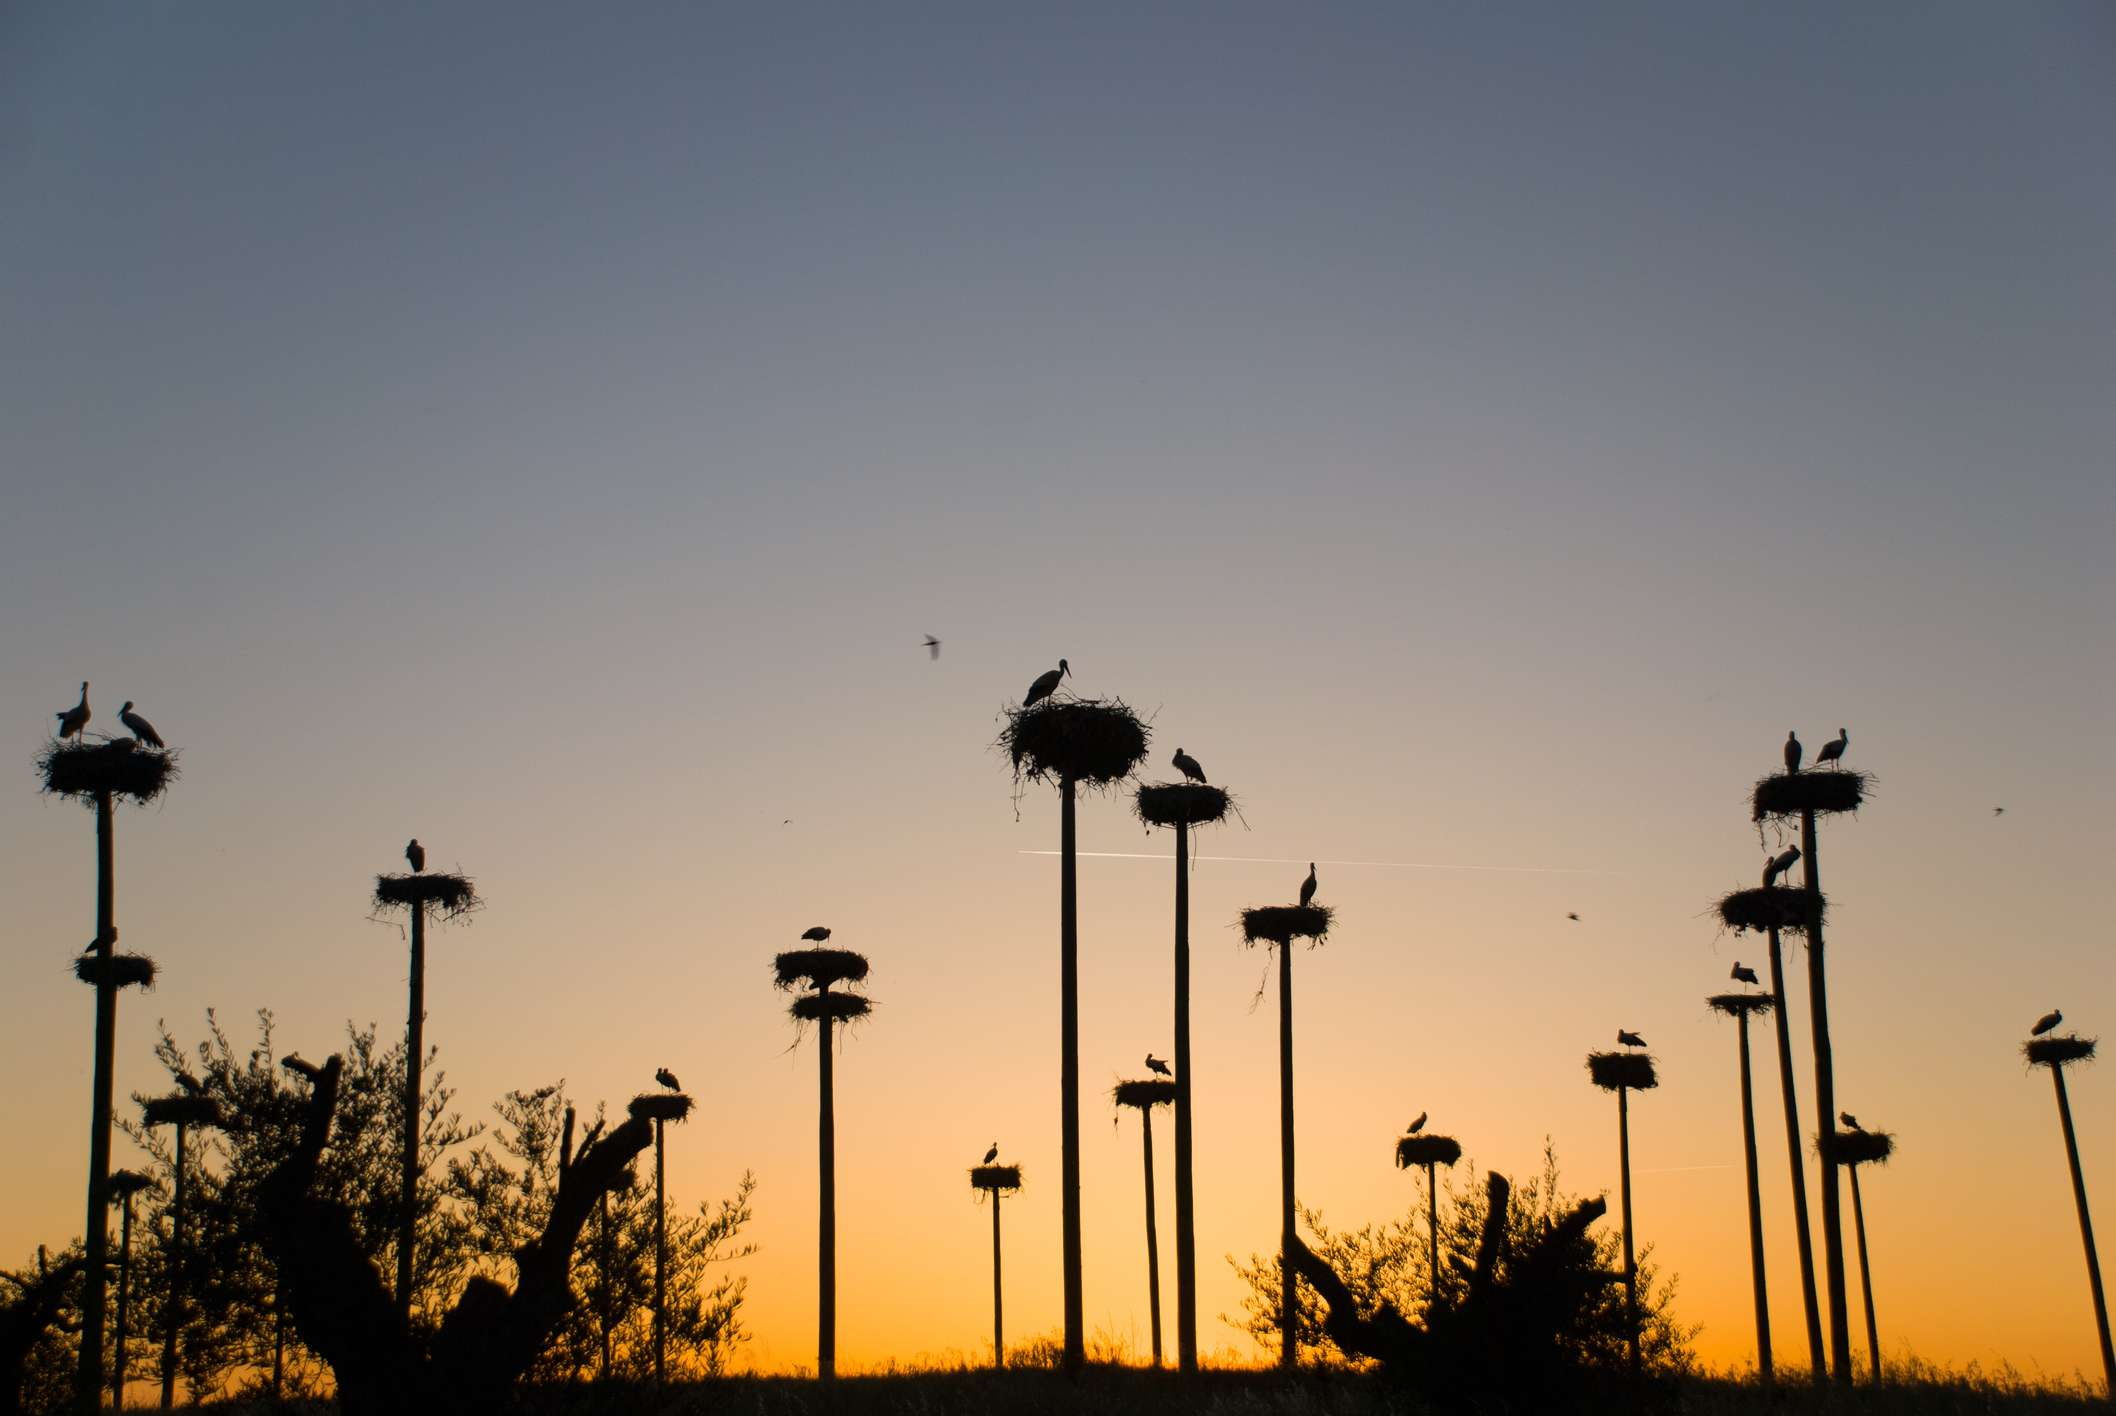 a blue sky fading into orange at sunset with a view of stork nests at the top of 15 tall poles, each nest contains one or two storks